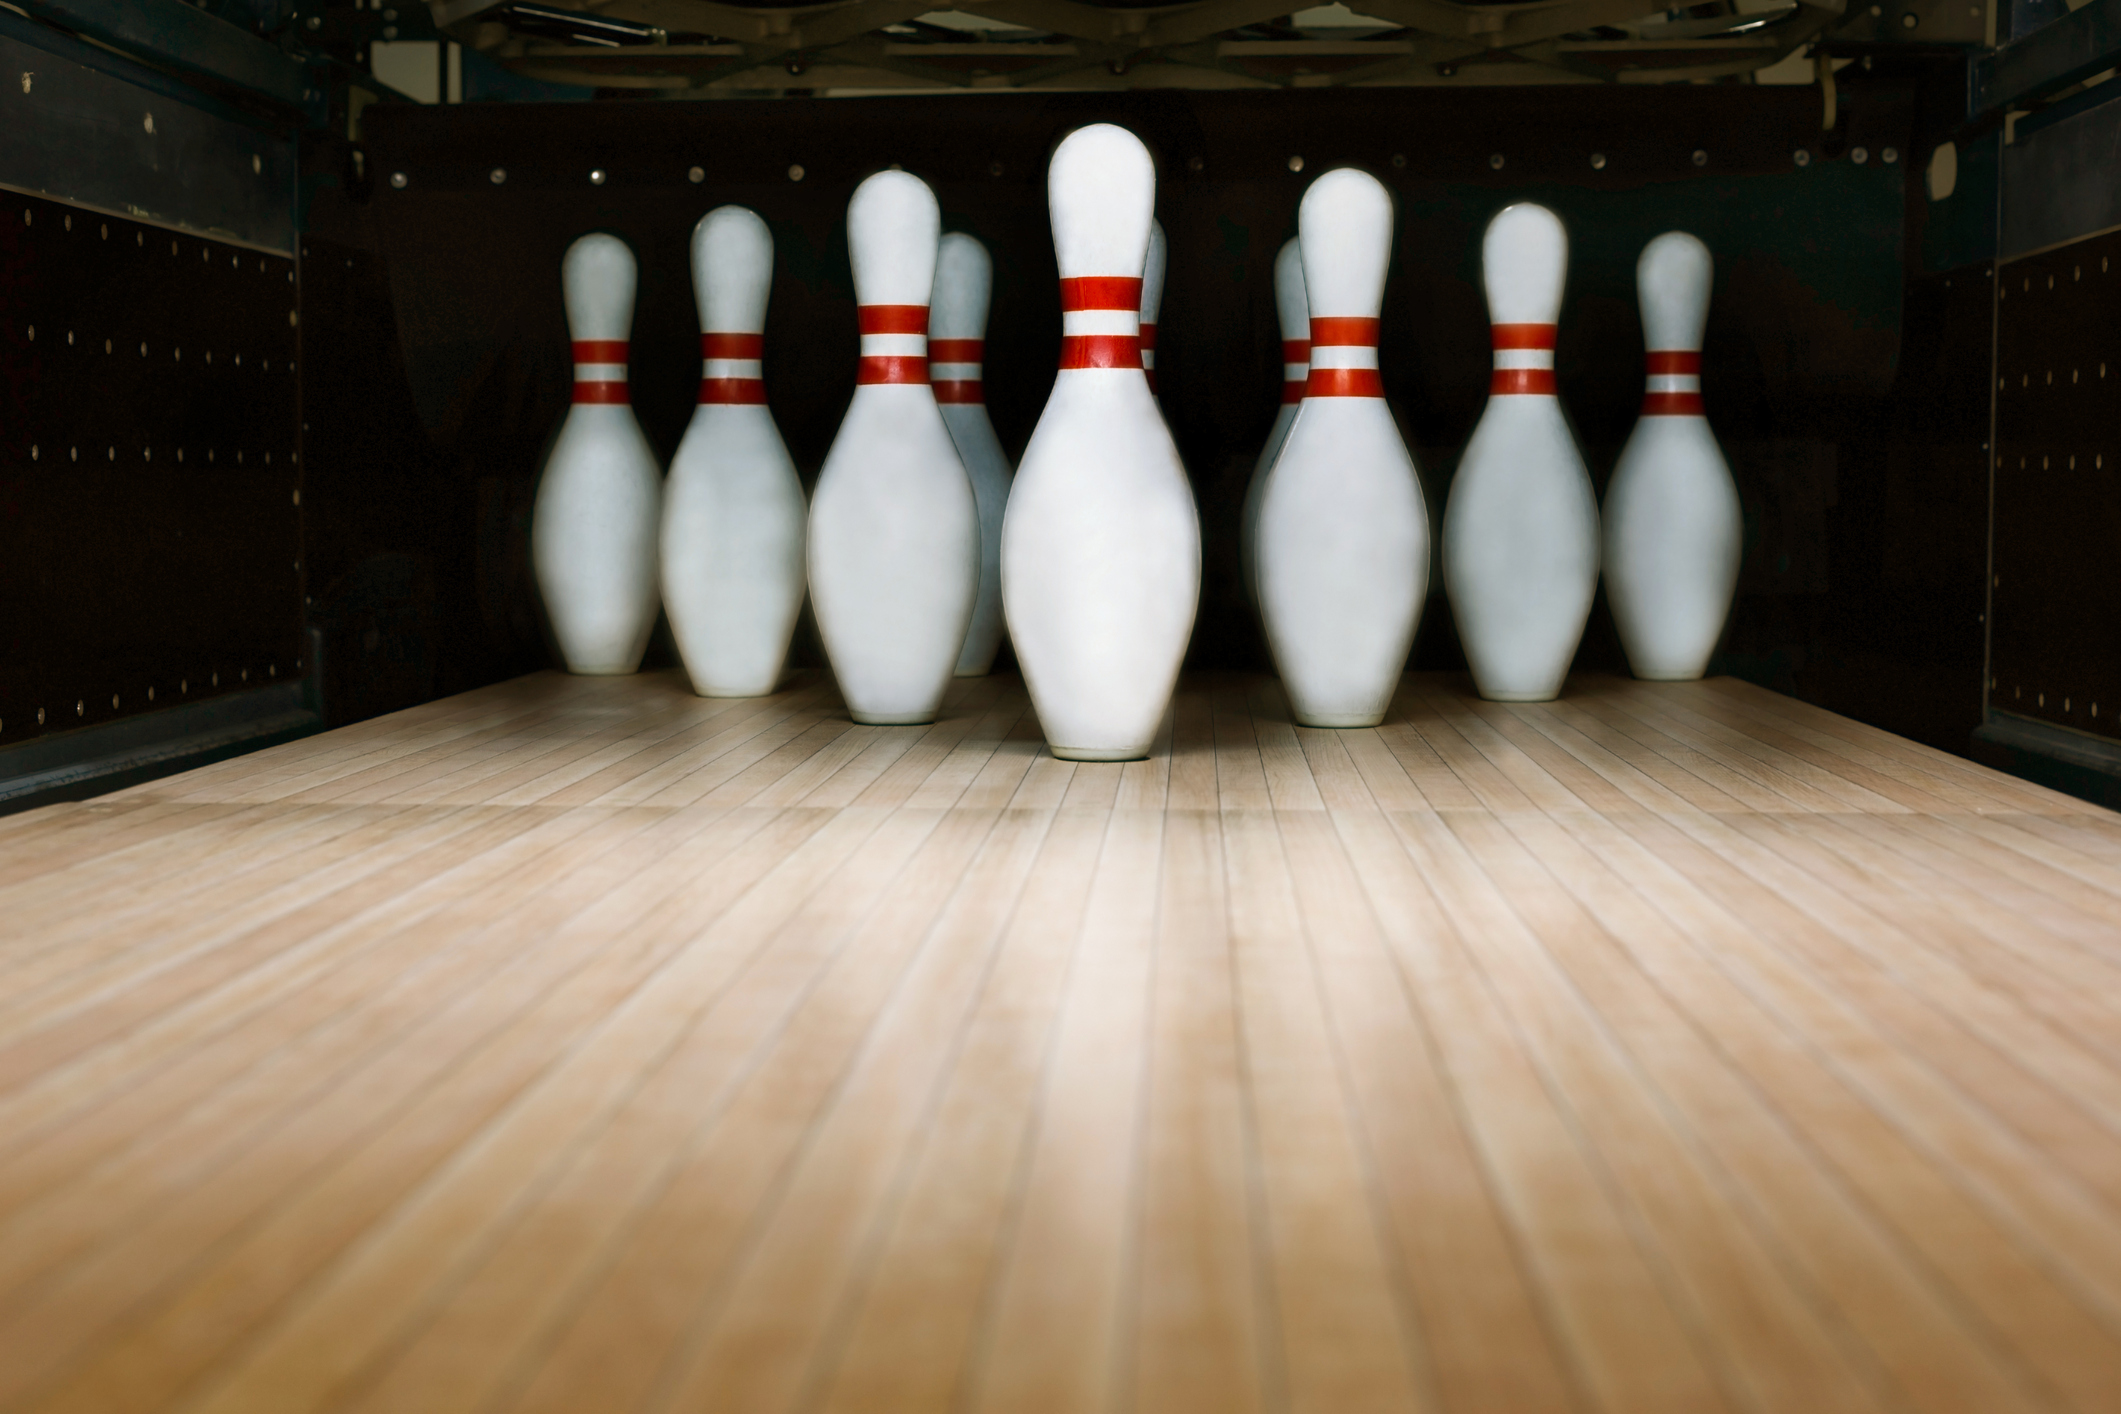 Let the good times bowl! - Bowl per Game$2.50 Adult // $1.75 Youth + Senior (over 50)Shoe Rental$1.75 Adult // $1.50 YouthRent-A-LaneWednesday from 4 - 9 PM // Free shoe rental$18 for two hours ($8 for each additional hour)